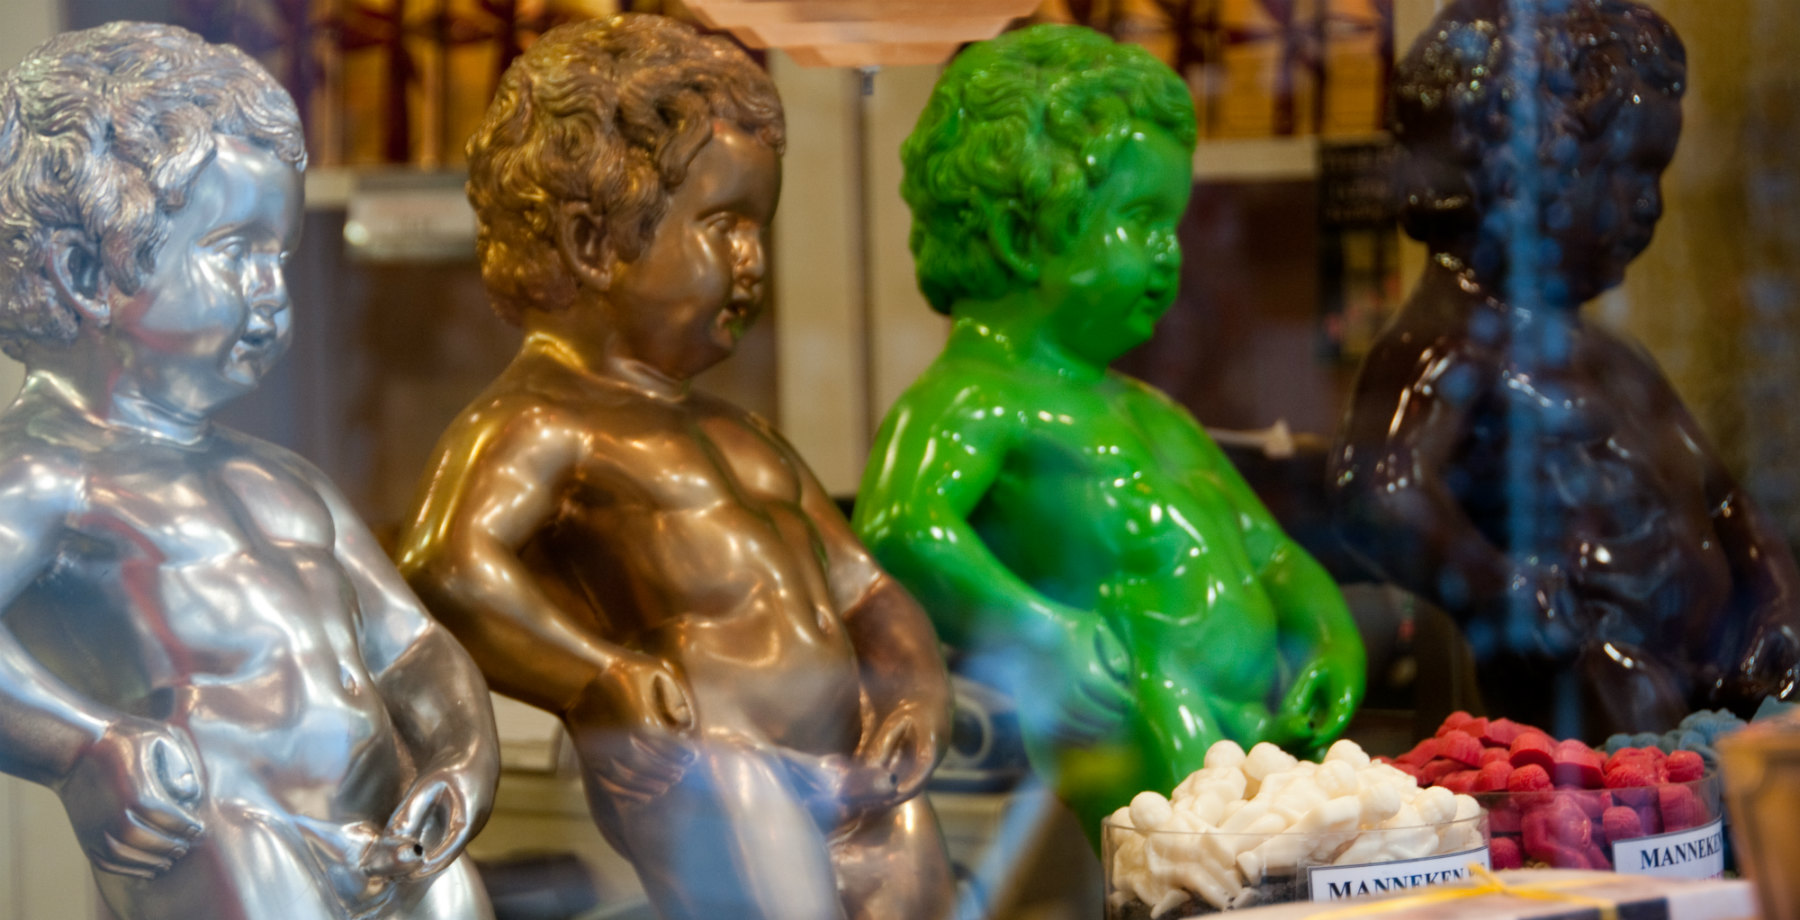 Colourful statues of Manneken Pis Brussels (c) Pieter Heremans